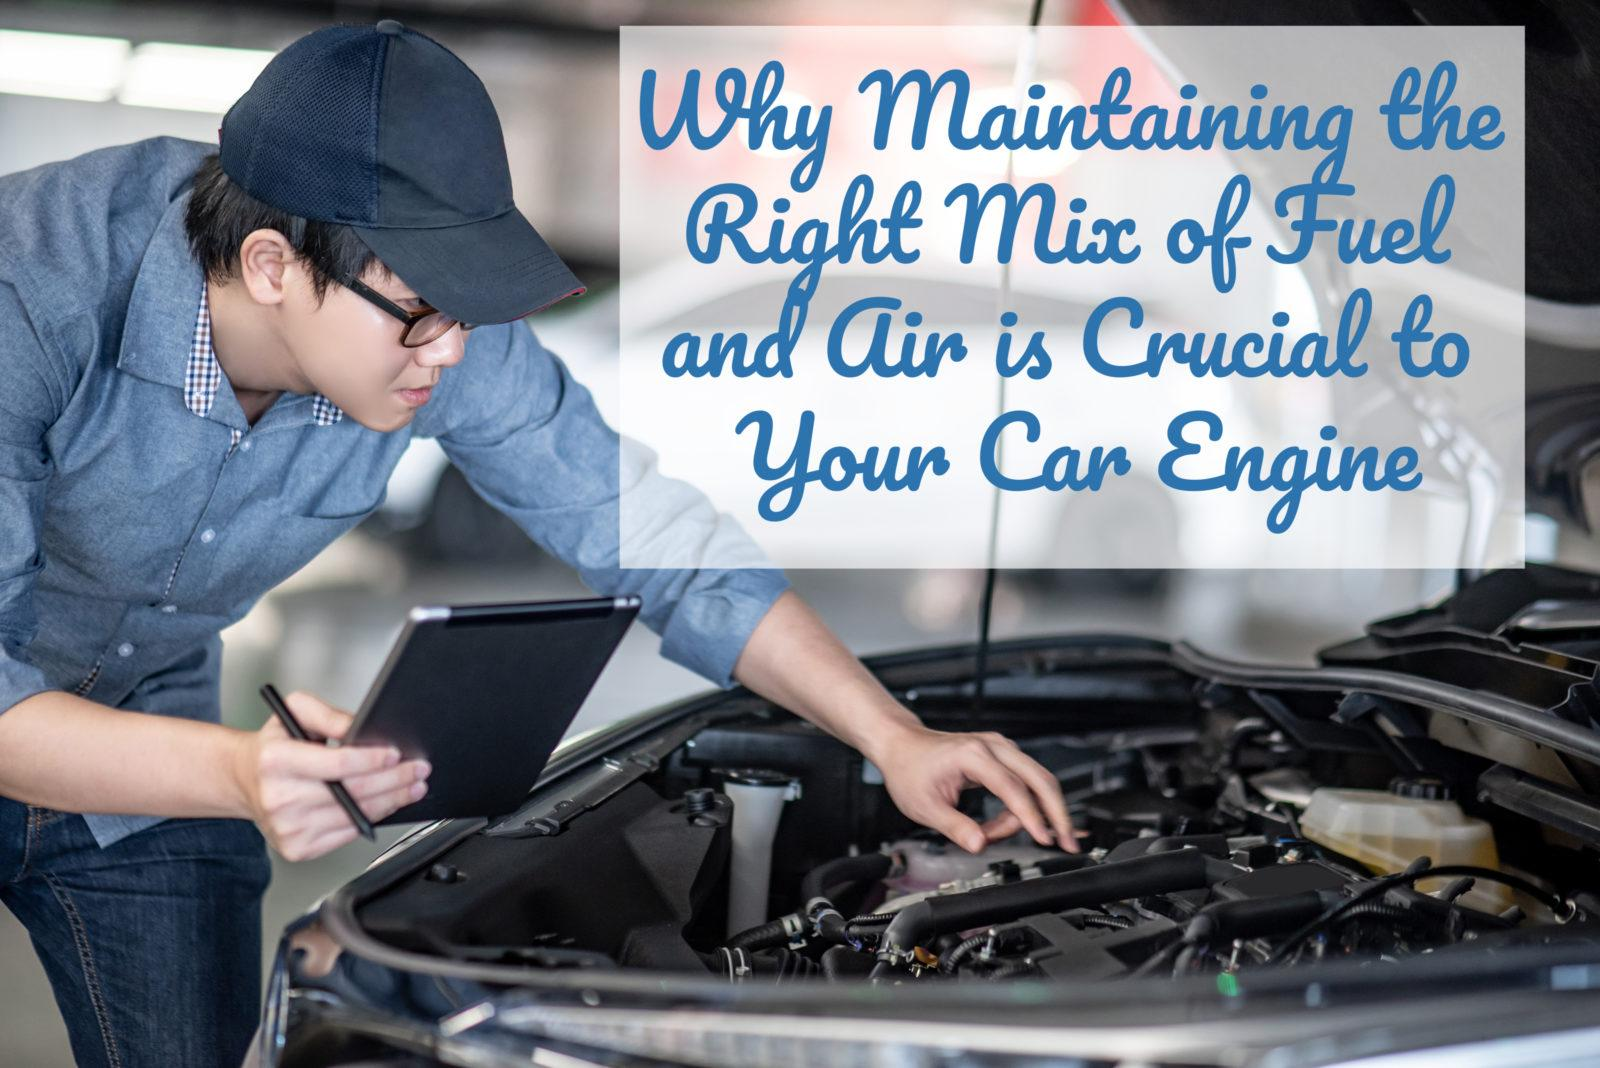 why maintaining the right mix of fuel and air is crucial to your car engine